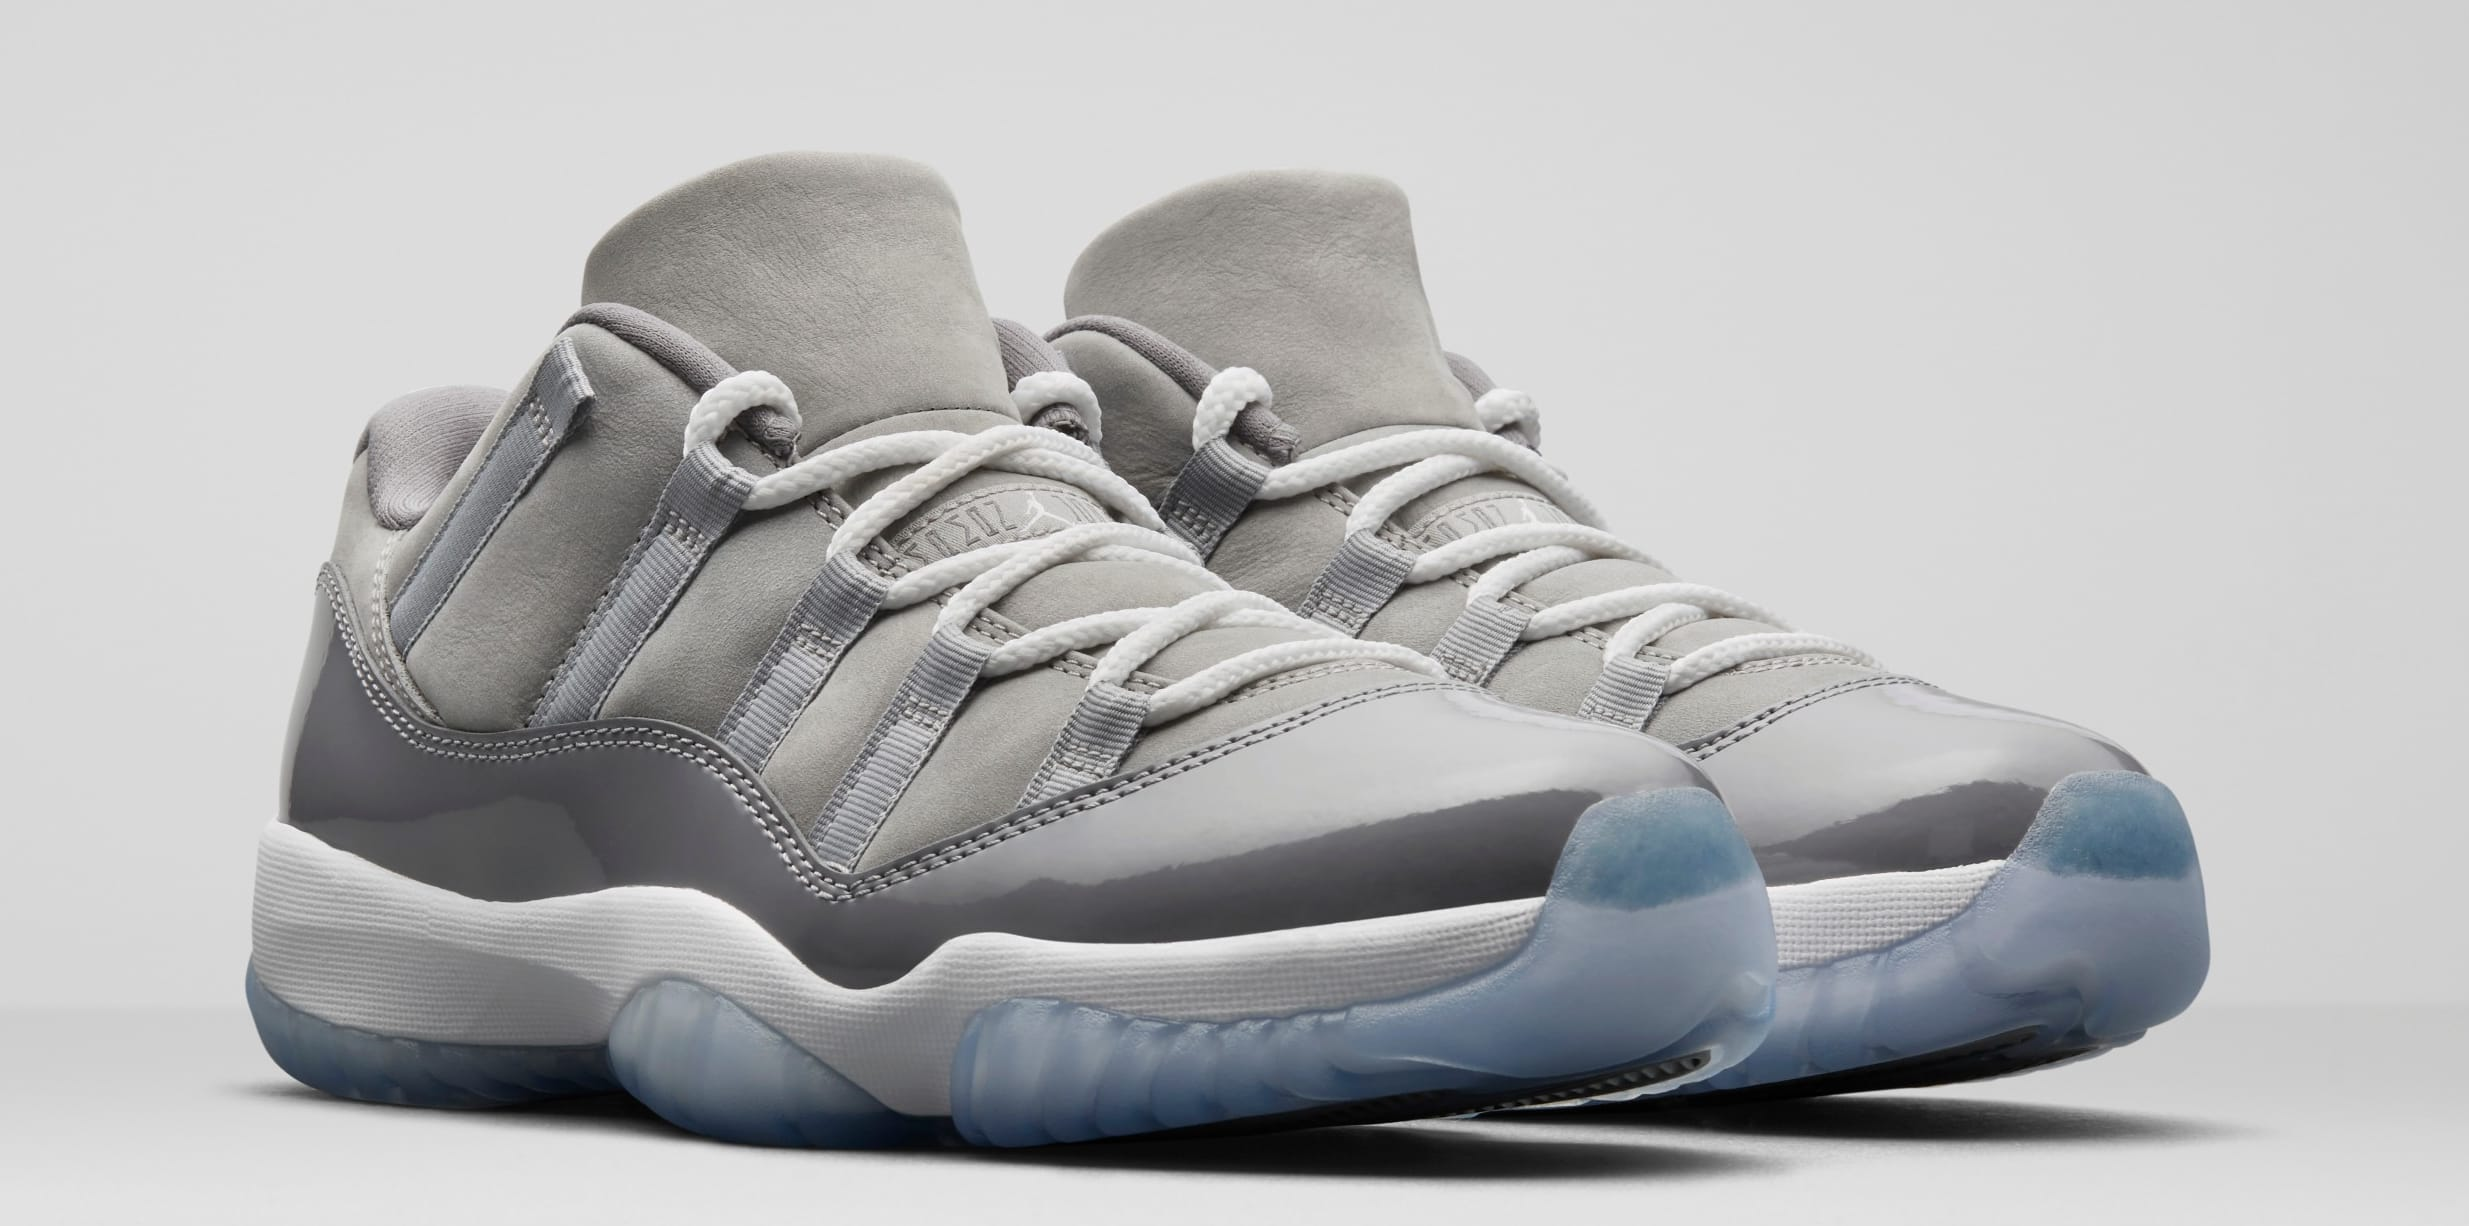 3e27be2c6f0a65 sweden air jordan 11 low cool grey pair 45959 1aefd